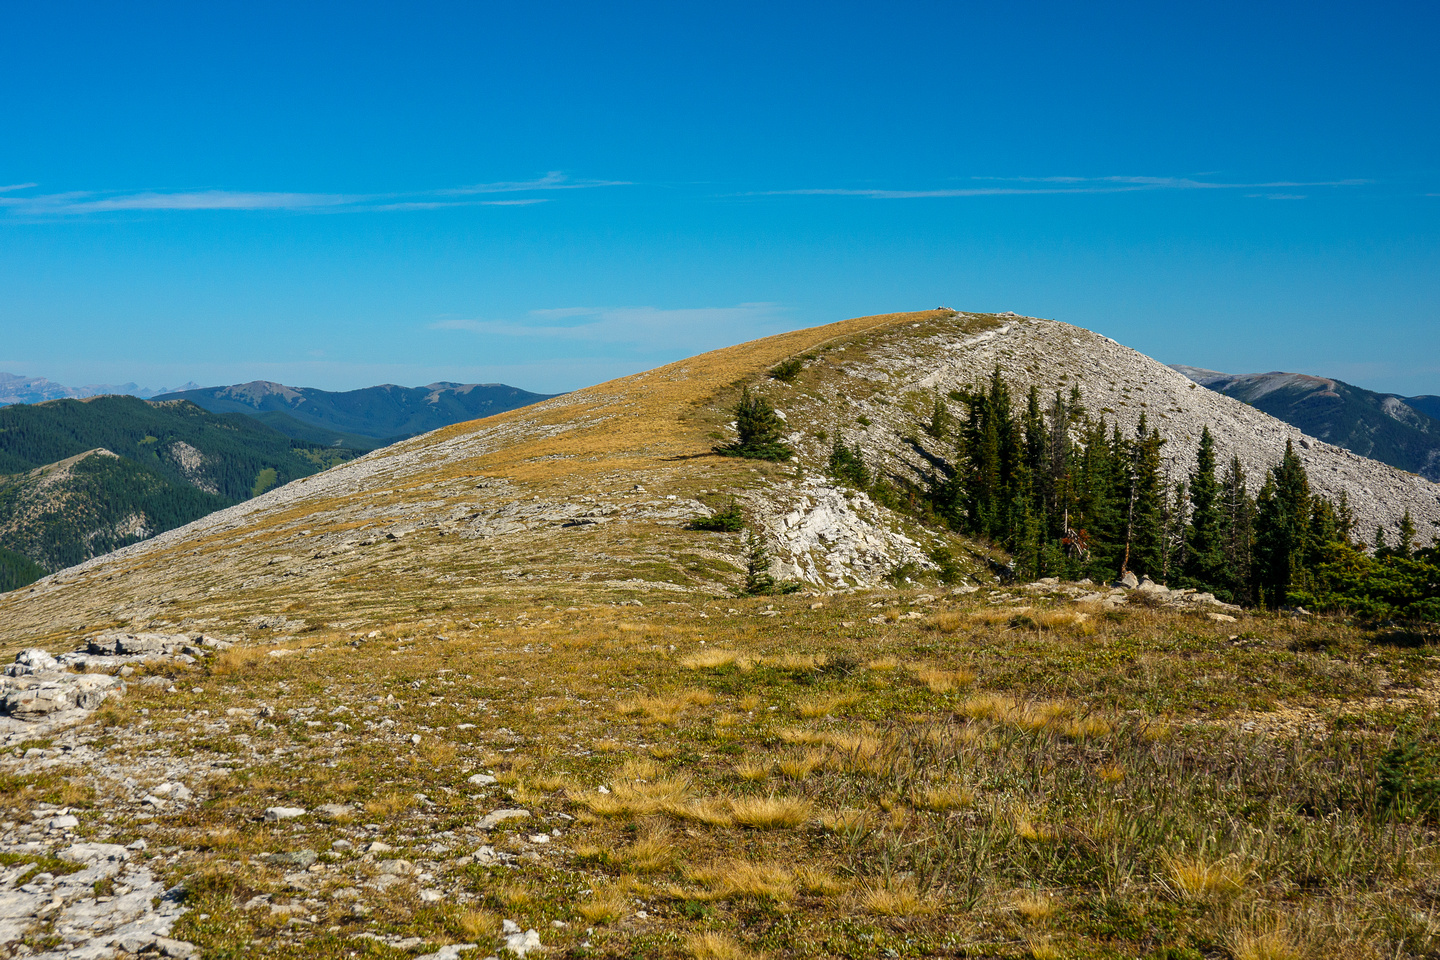 Hiking to the north summit on a perfect late summer day.